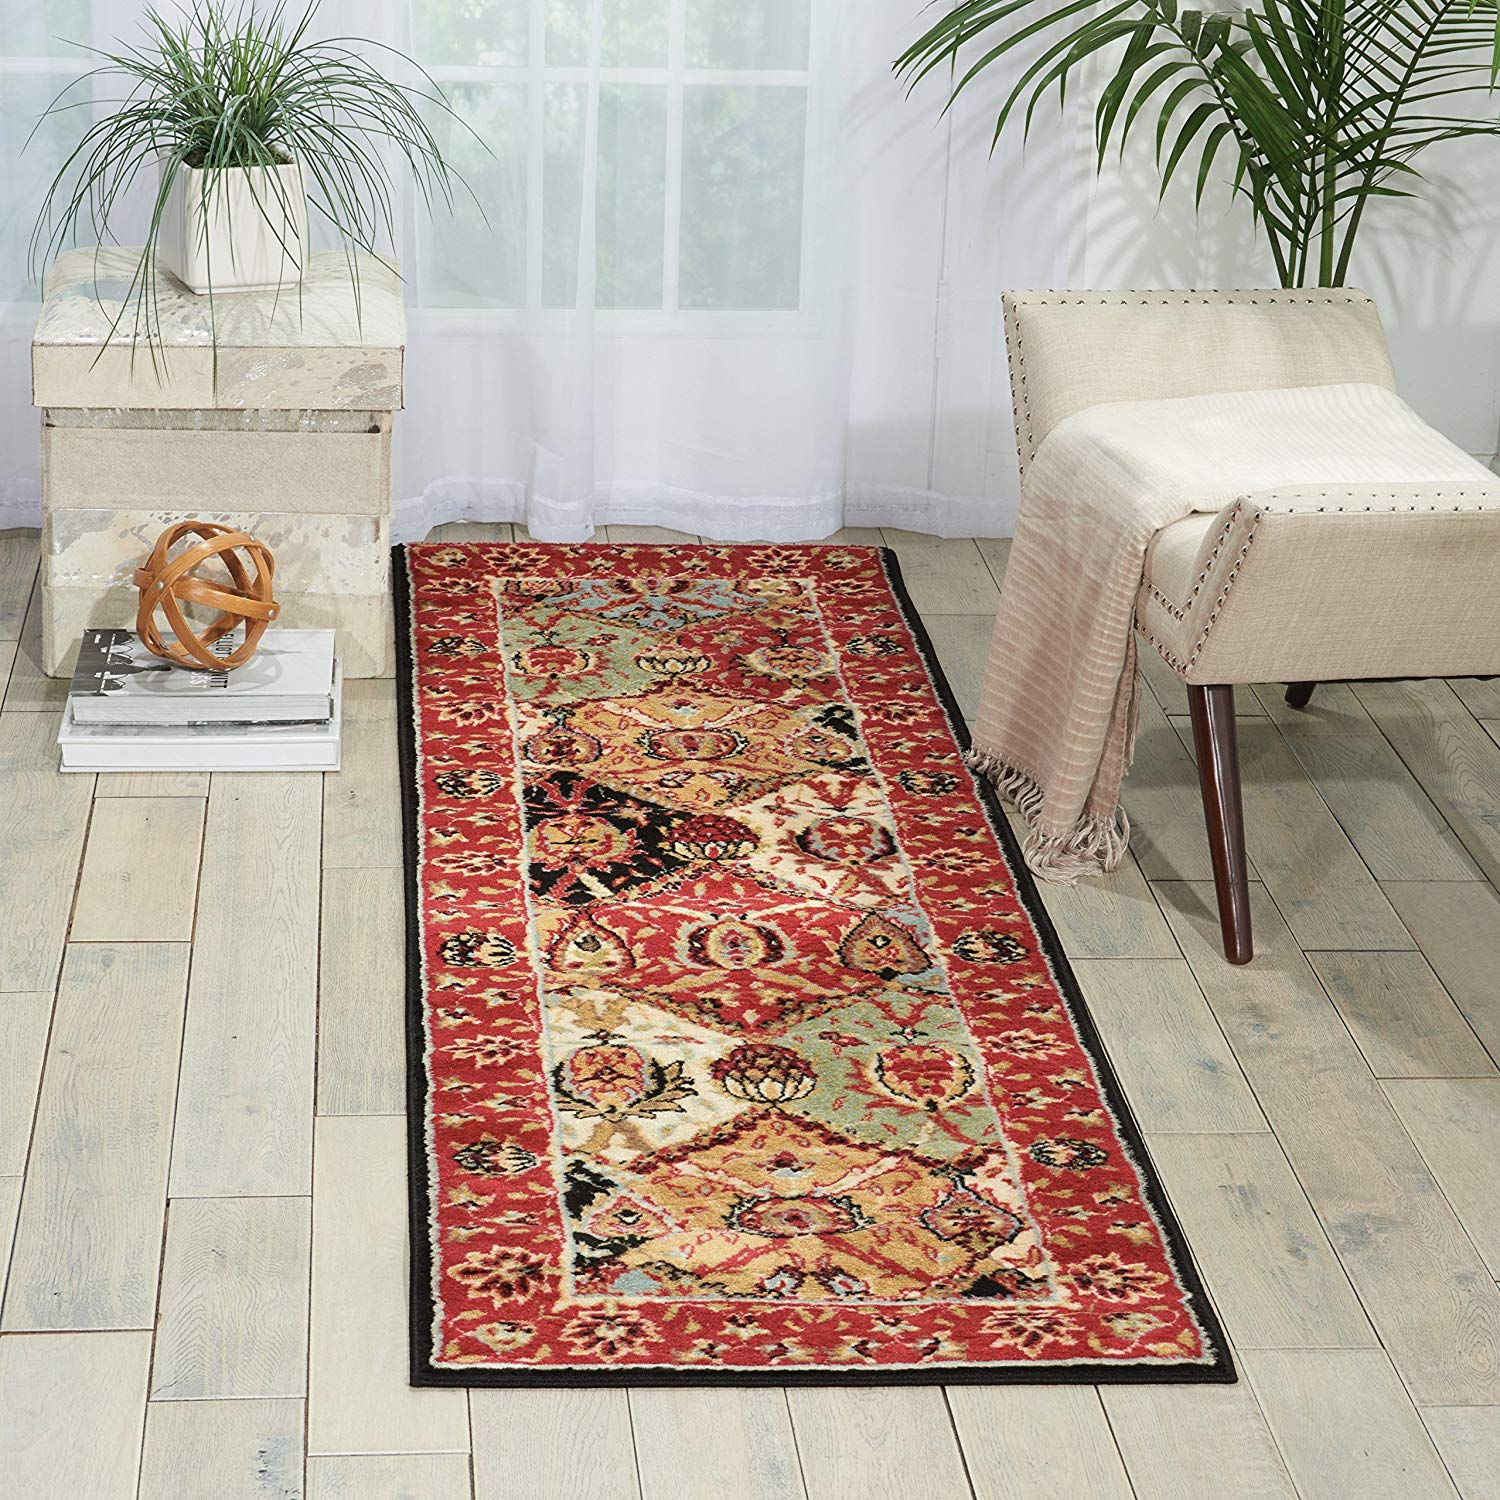 geometric rug pattern living room get quotations 22 73 red beige oriental runner rug rectangle black white cheap geometric rug find deals on line at